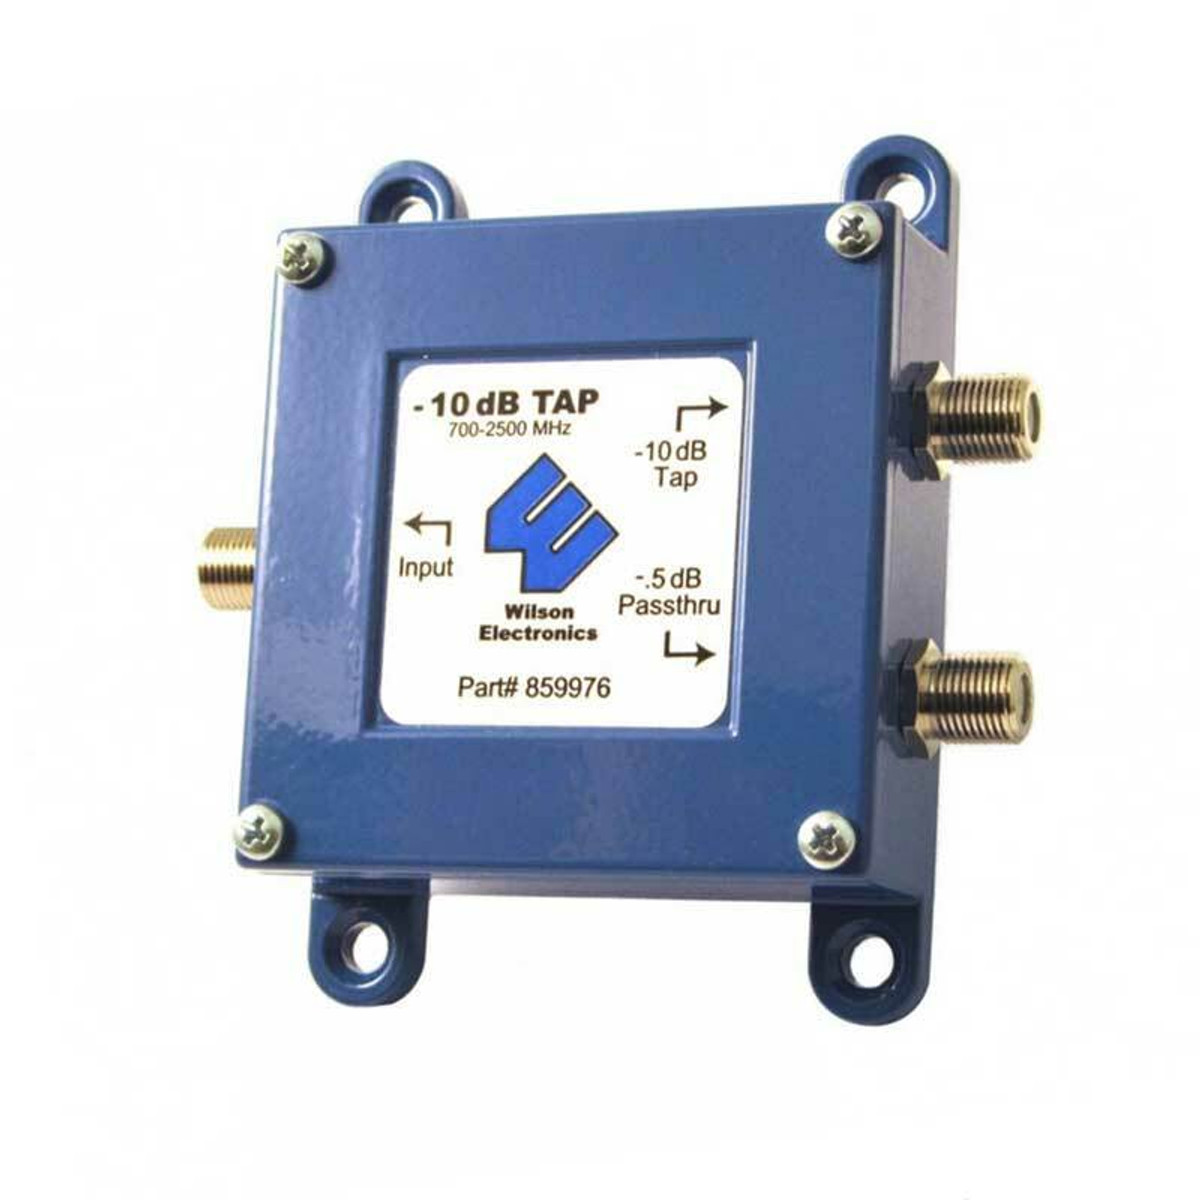 weBoost Wilson -10db / -0.5db Tap For 700-2500 Mhz 75ohm | 859976